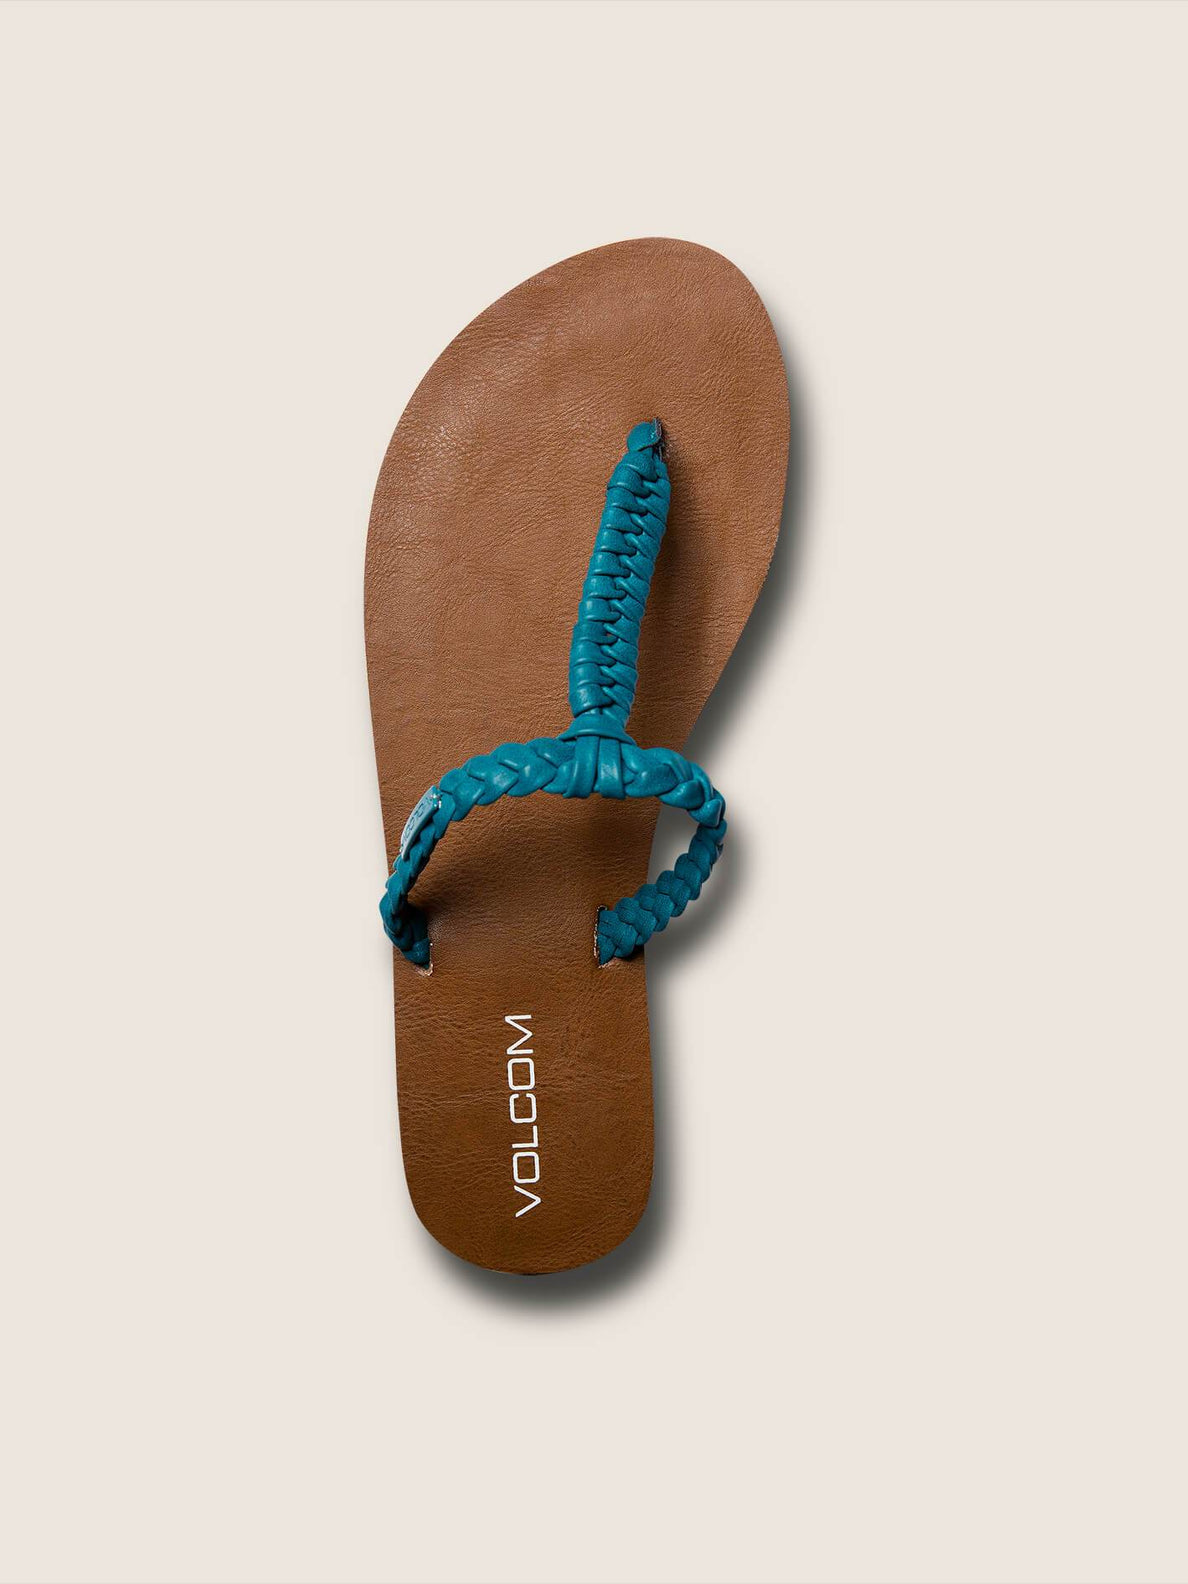 Fishtail Sandals In Teal, Alternate View